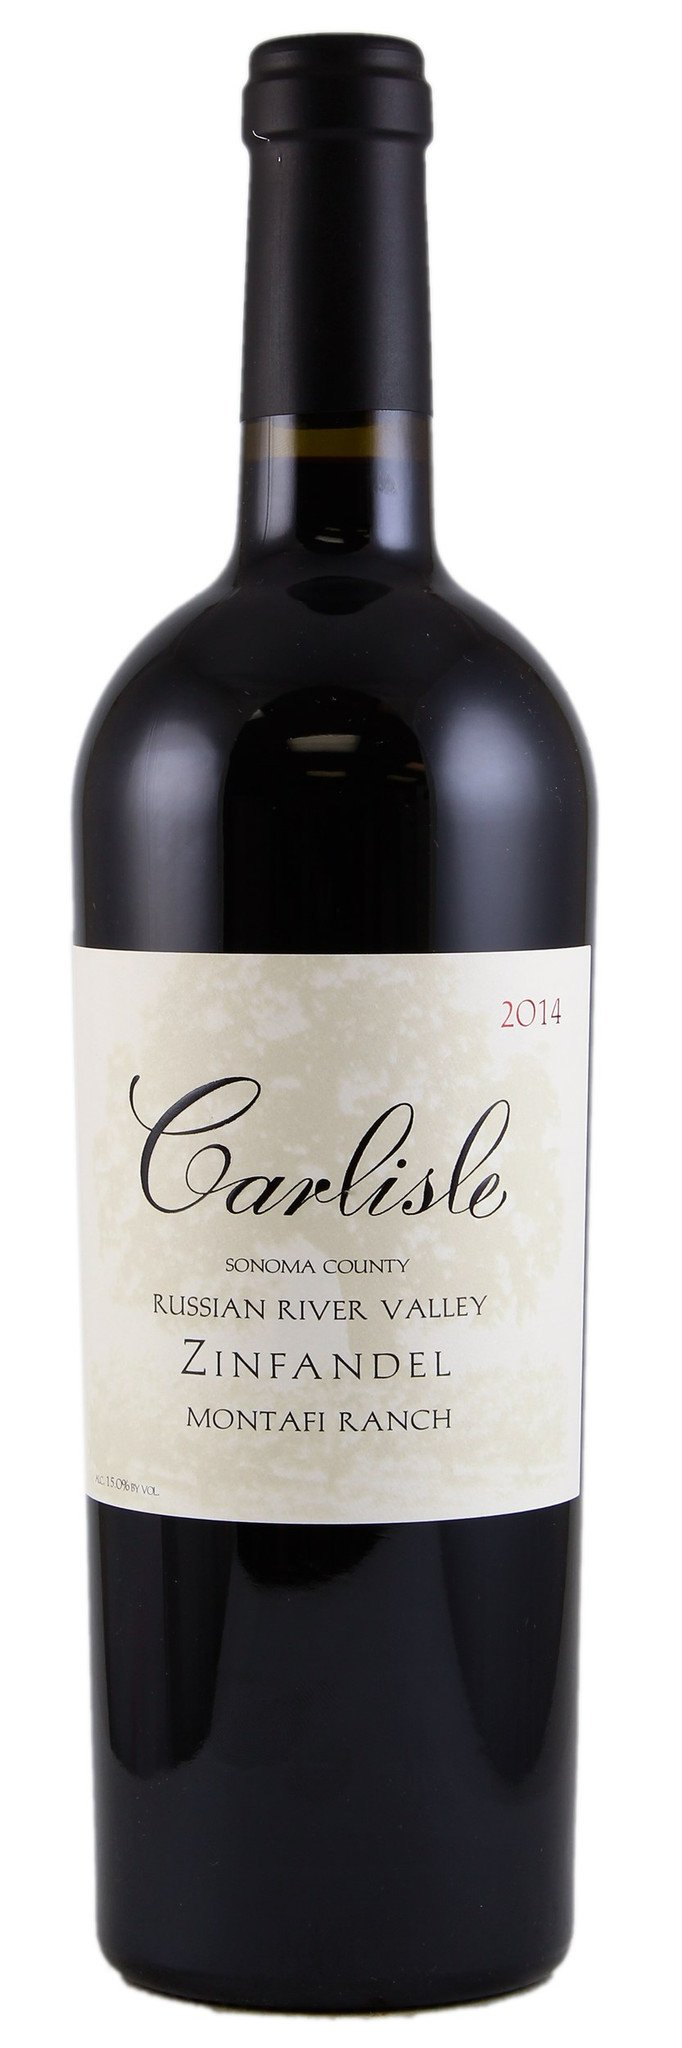 Carlisle 2015 Montafi Ranch Zinfandel, Russian River Valley